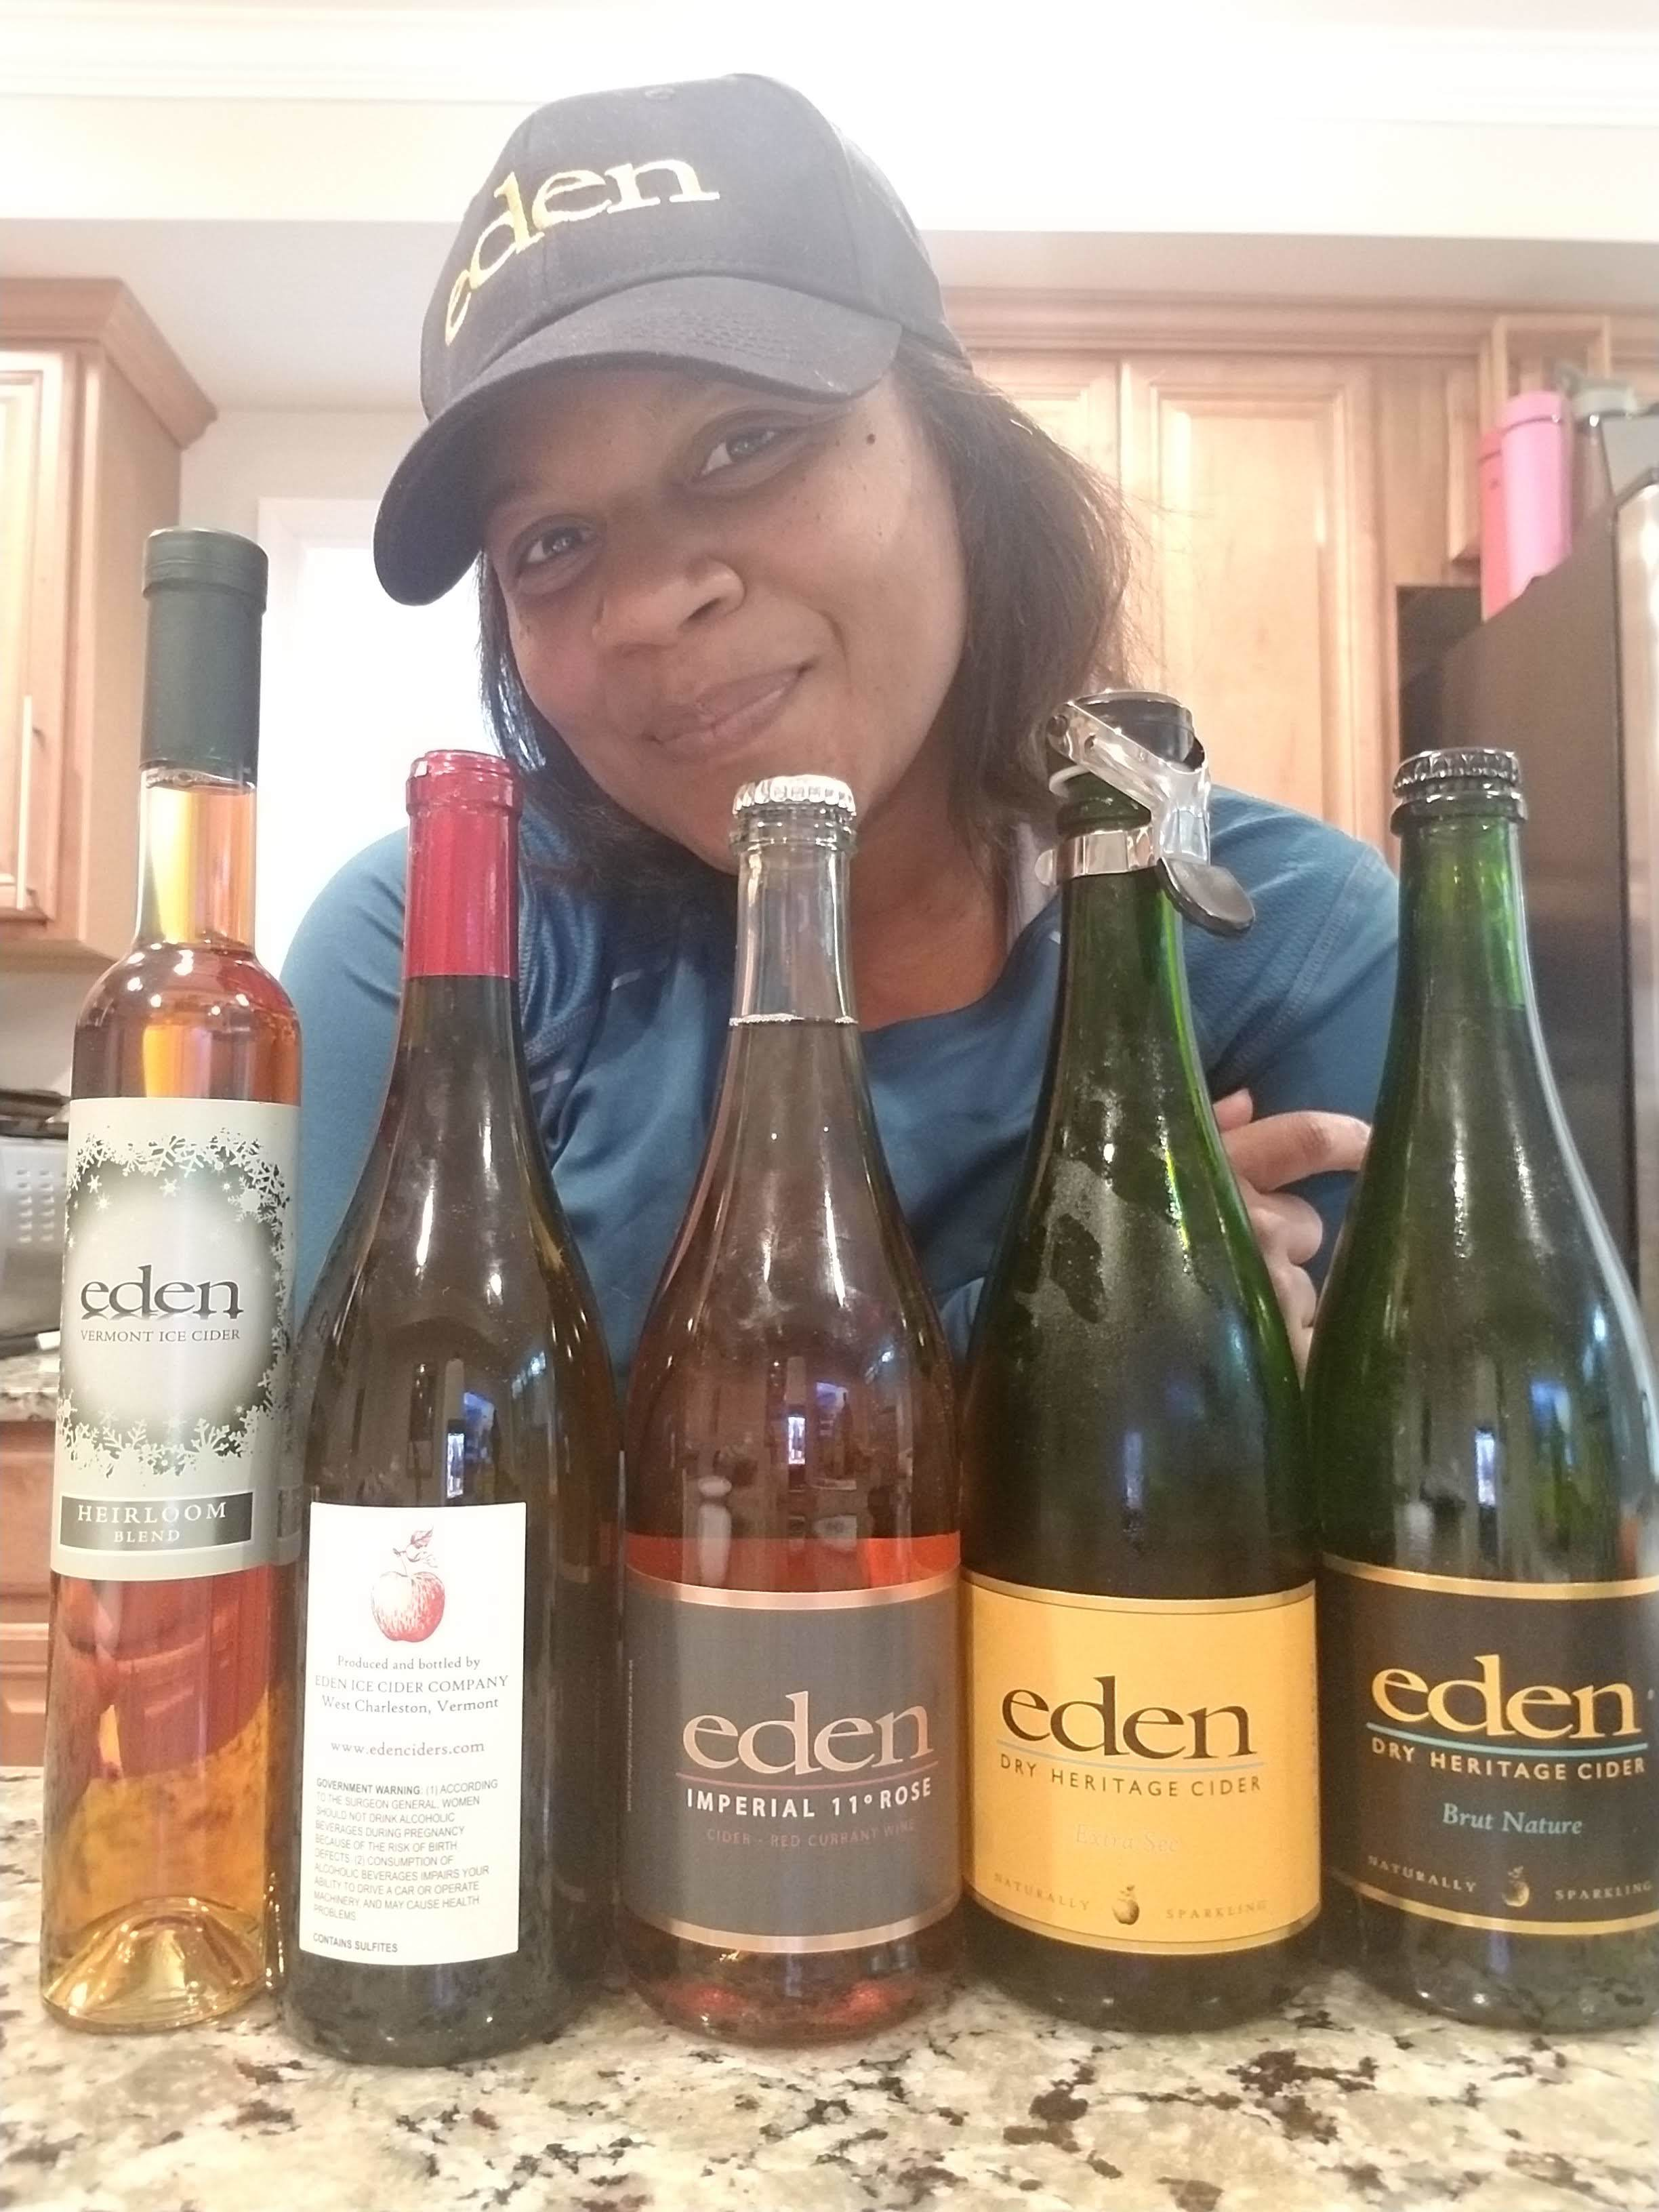 - I was just as excited about Eden Heritage Ciders as I would be about any wine i've received. They were diverse in style and fruit. Pure art. I would say this is the perfect time of the year for ciders but I can see enjoying Eden ciders all year long.Cheers!Vine Me Up